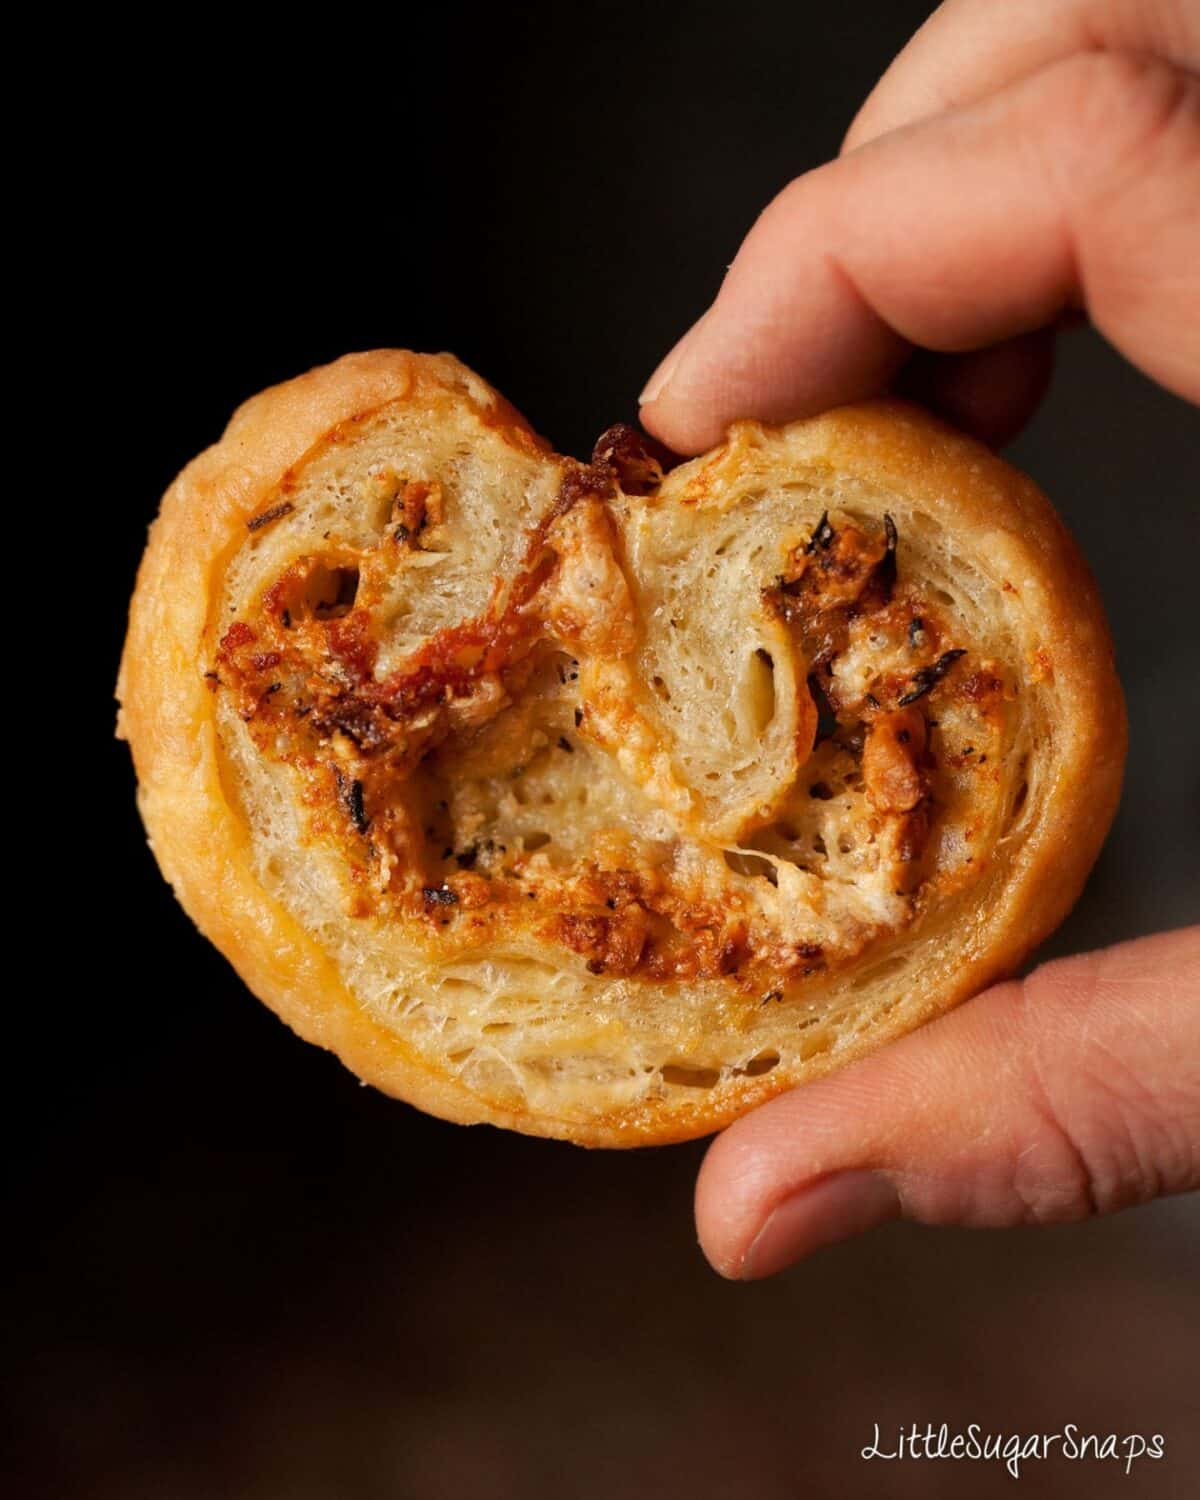 Person holding a Cheese Palmier against a black background